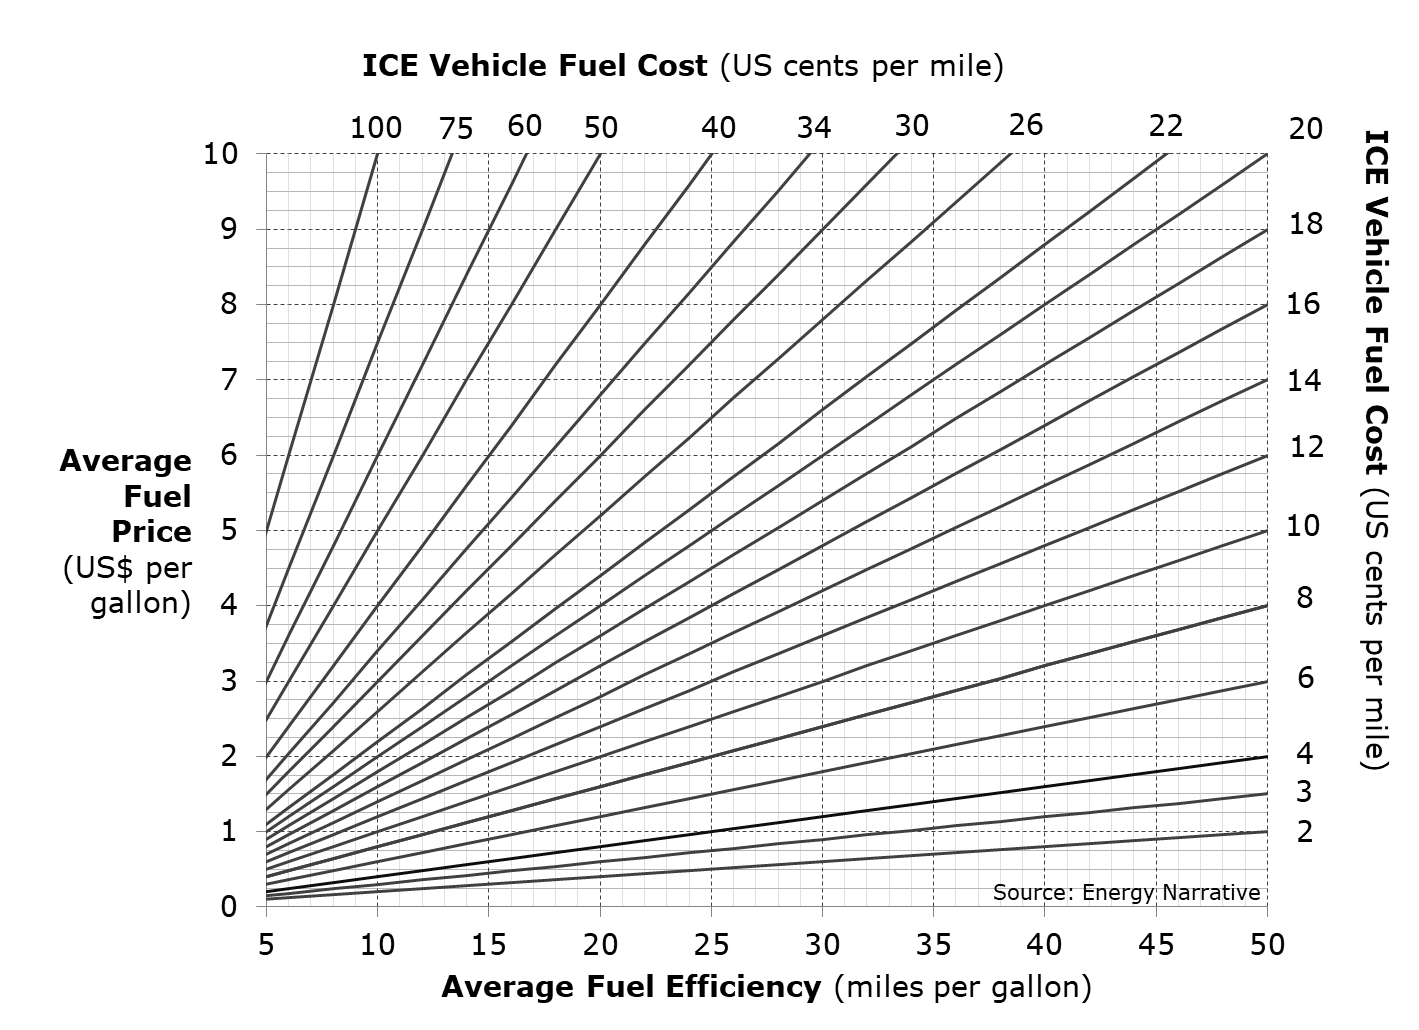 A graphic to calculate the cost per mile of an ICE using fuel price per gallon and the fuel efficiency in miles per gallon